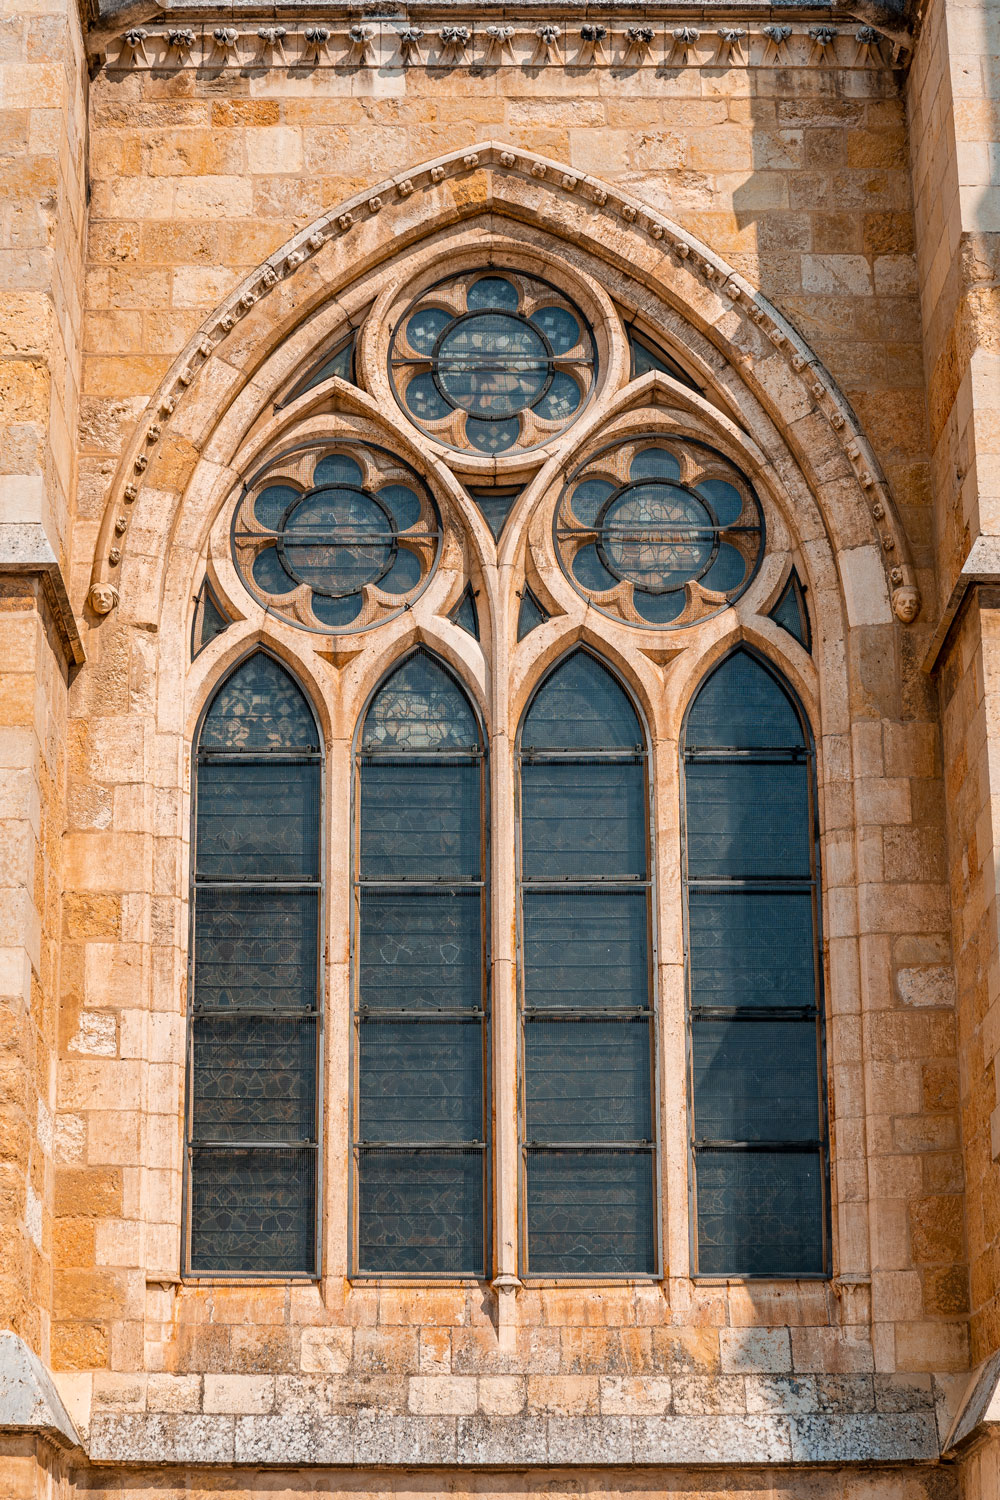 Cathedral windows in the Gothic style